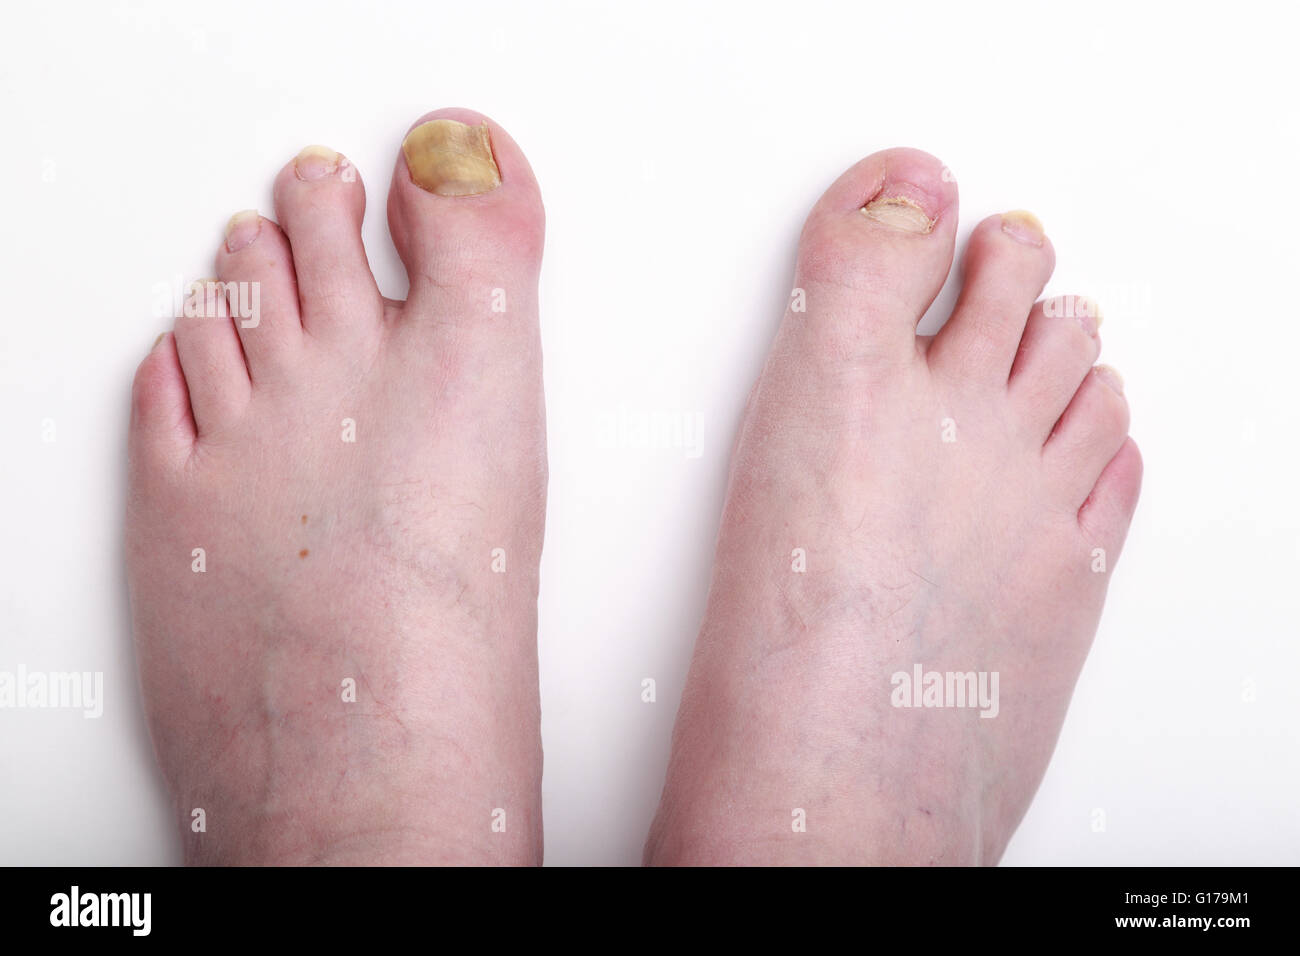 40 Year old caucasian man's feet showing missing toenail and discolouration of nails six months after end of - Stock Image